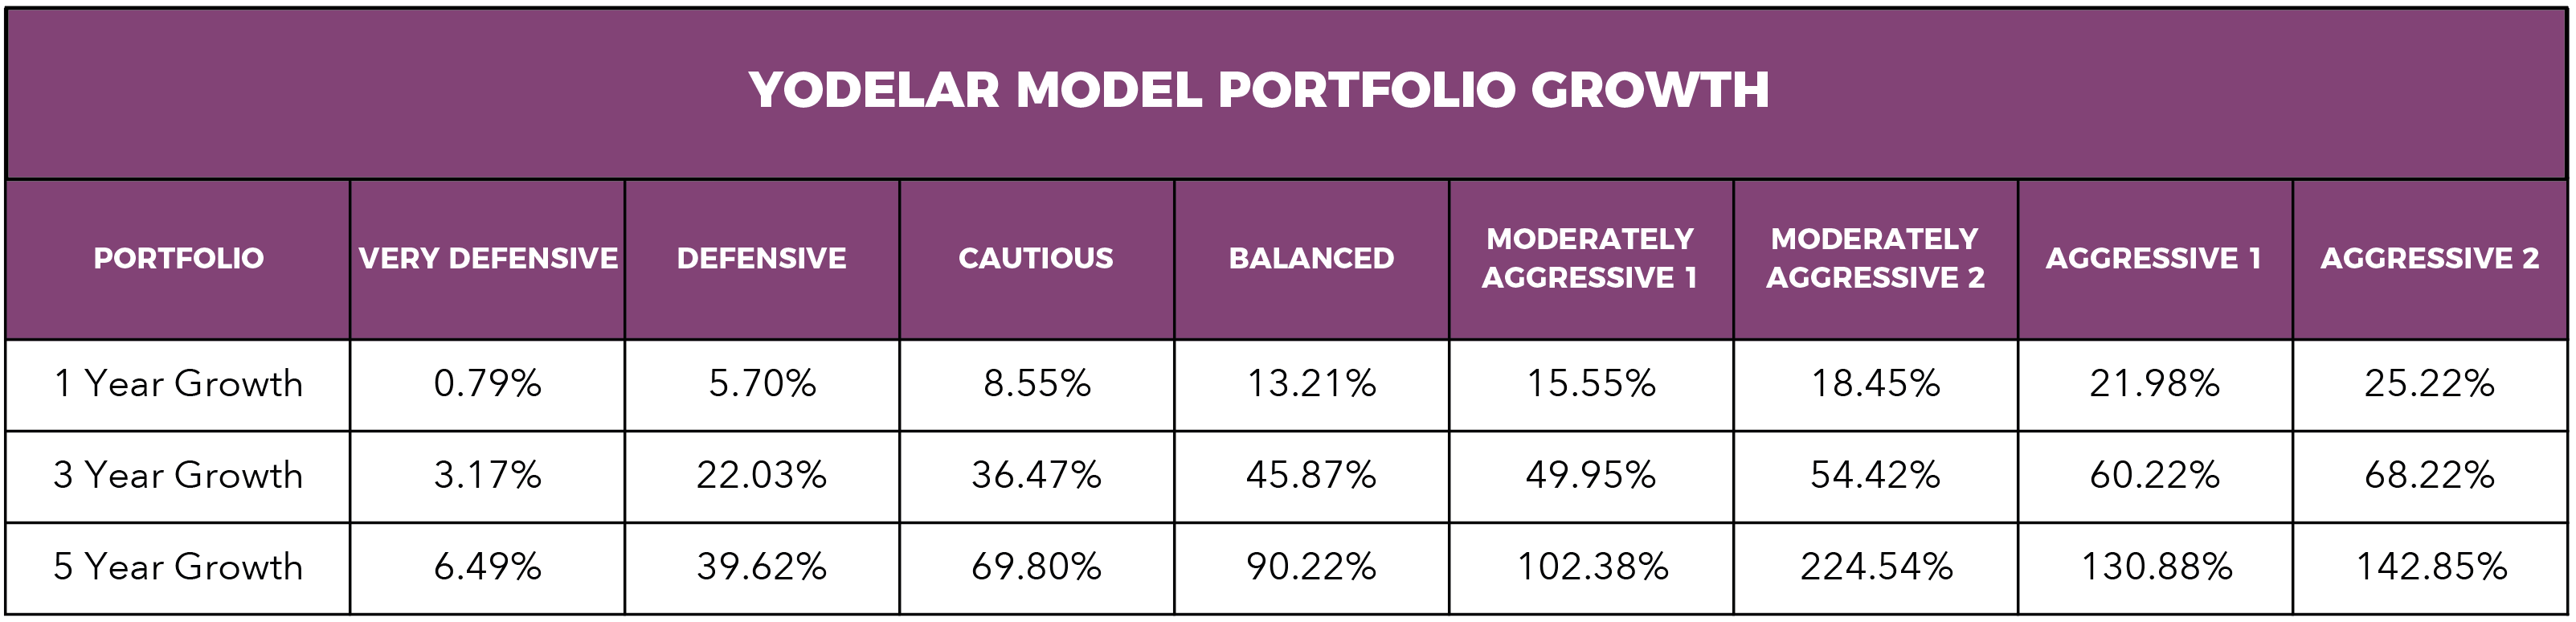 Model-Portfolio-performance-Oct17.png